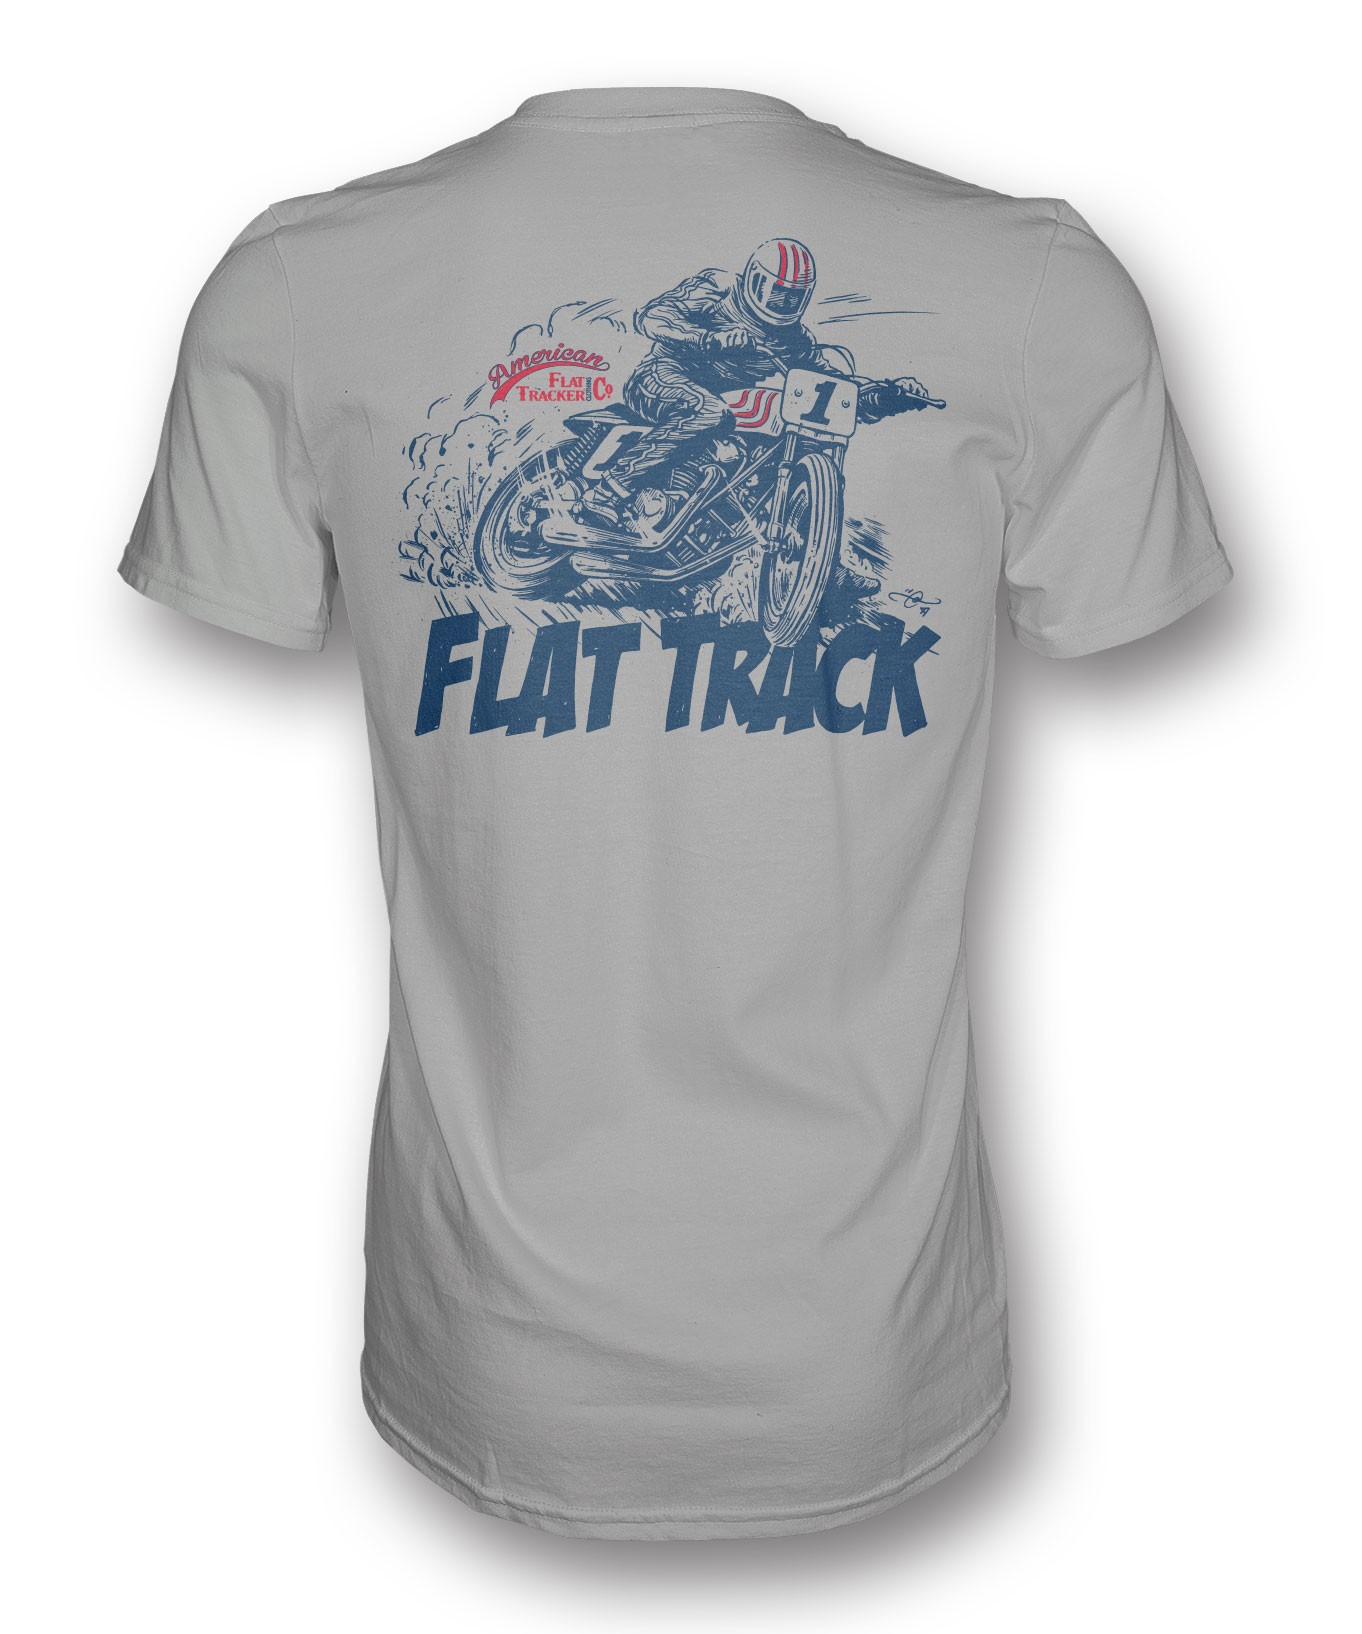 FLAT TRACK DESIGNED BY ADI GILBERT - FRONT AND BACK PRINT